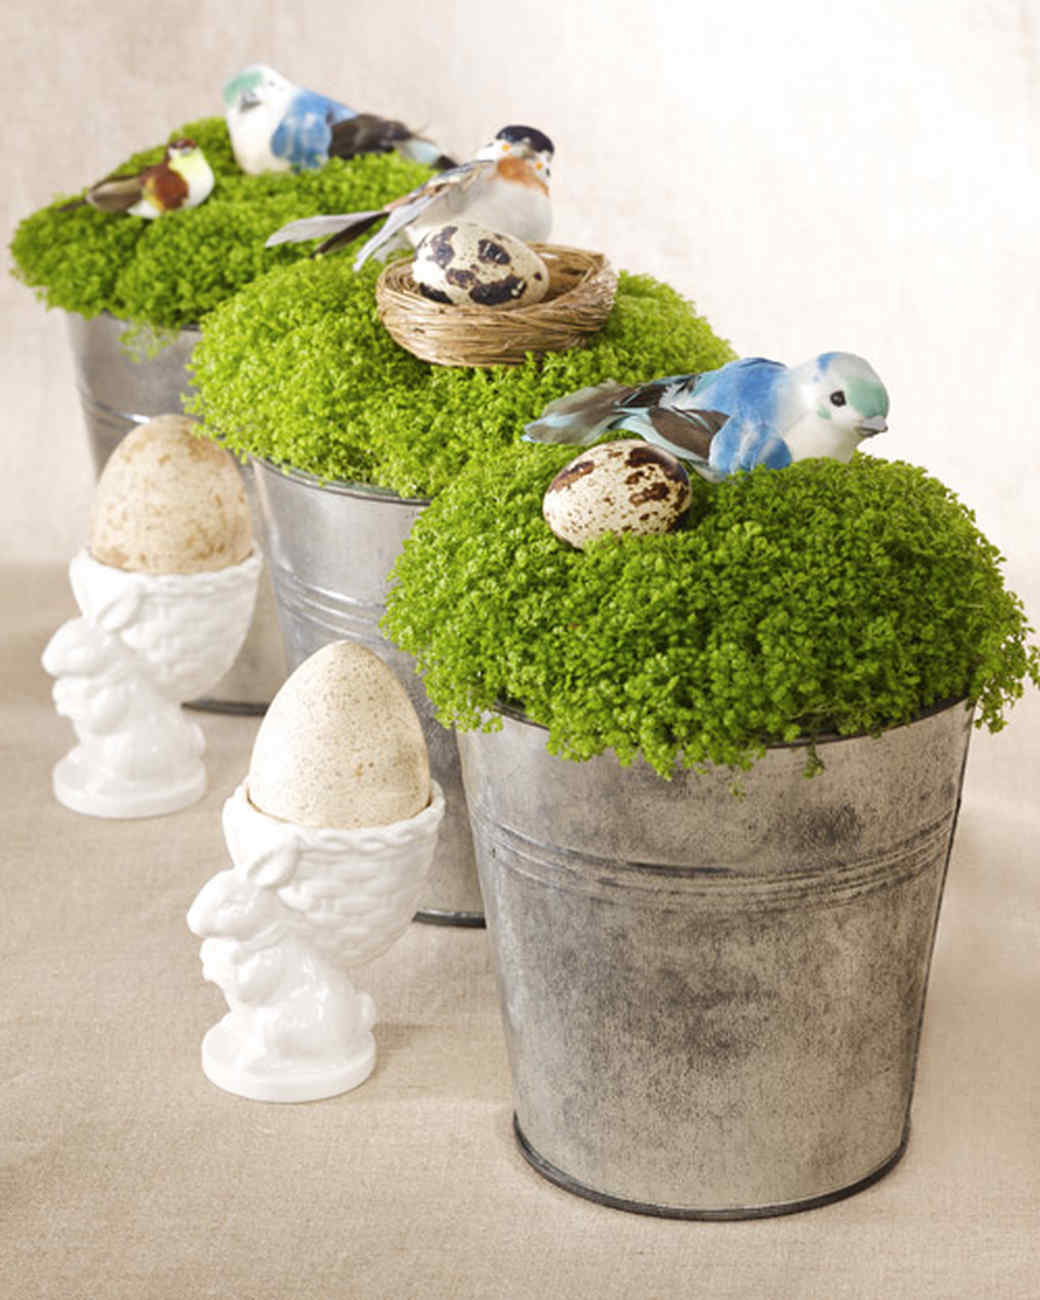 A Growing Obsession: Crafting with Moss | Martha Stewart